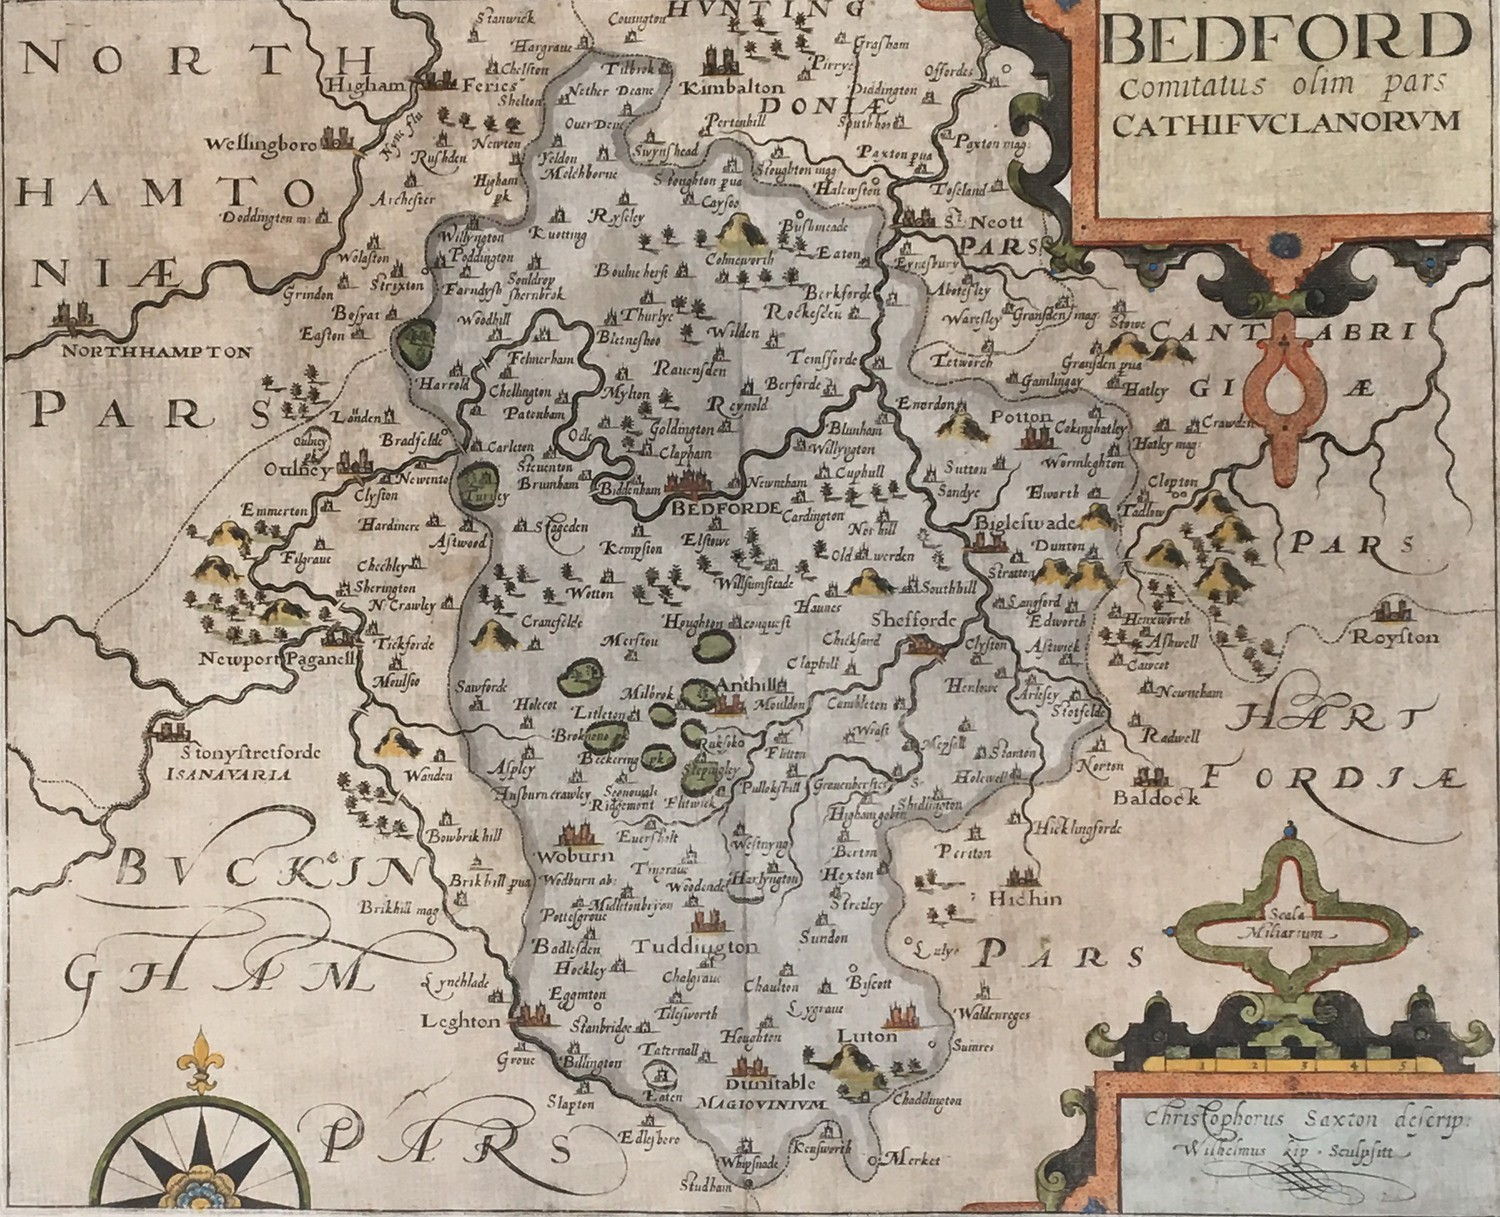 Christopher Saxton (act.c.1540-1610) with William Kip, hand coloured map of Bedford, 27.5 x 33cm